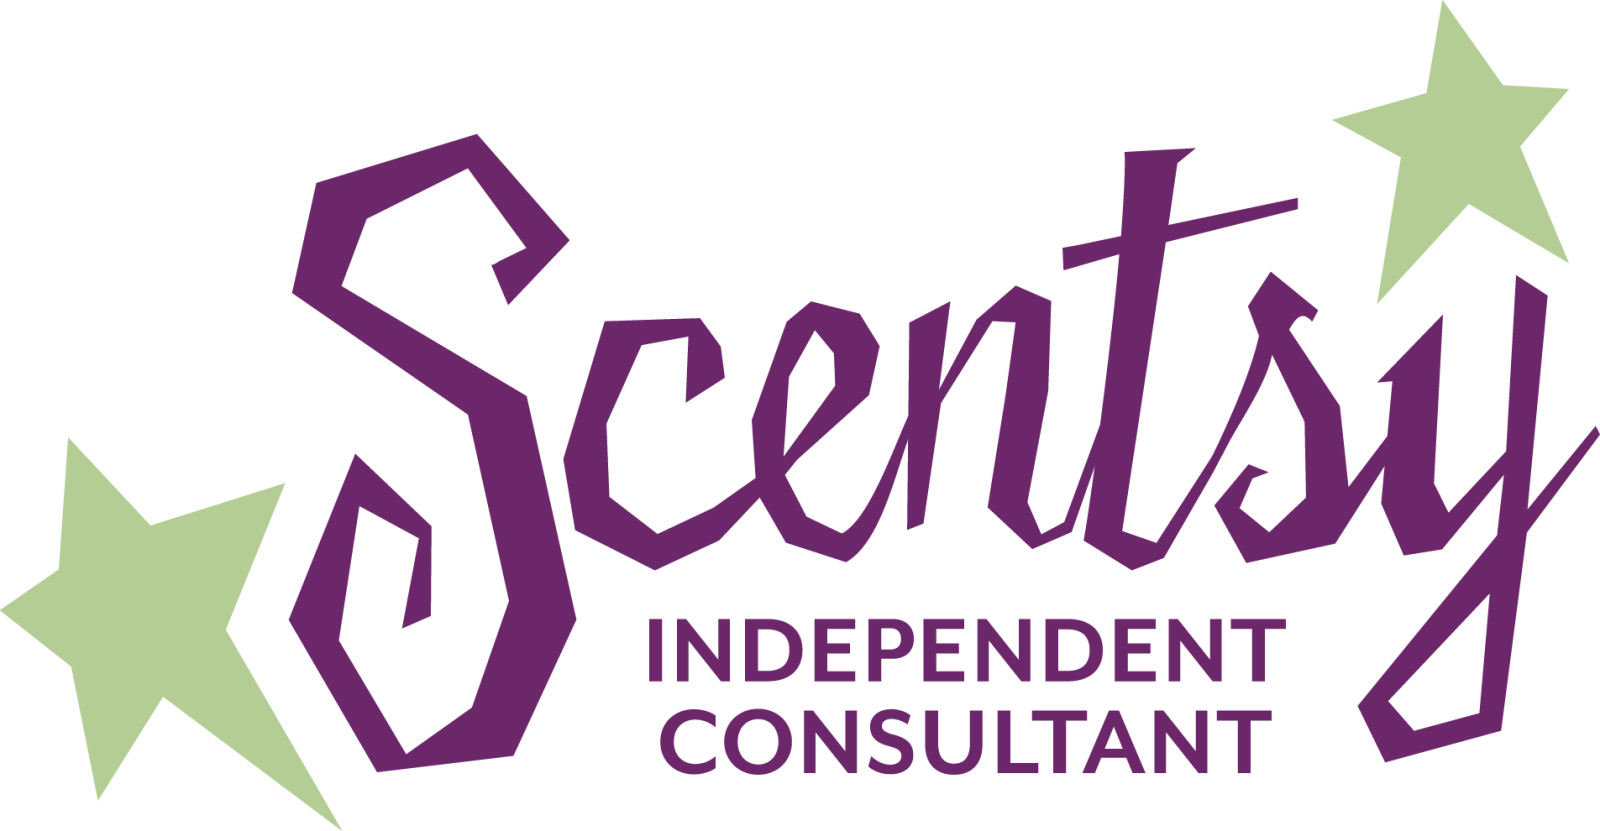 Scentsy Independent Consultant